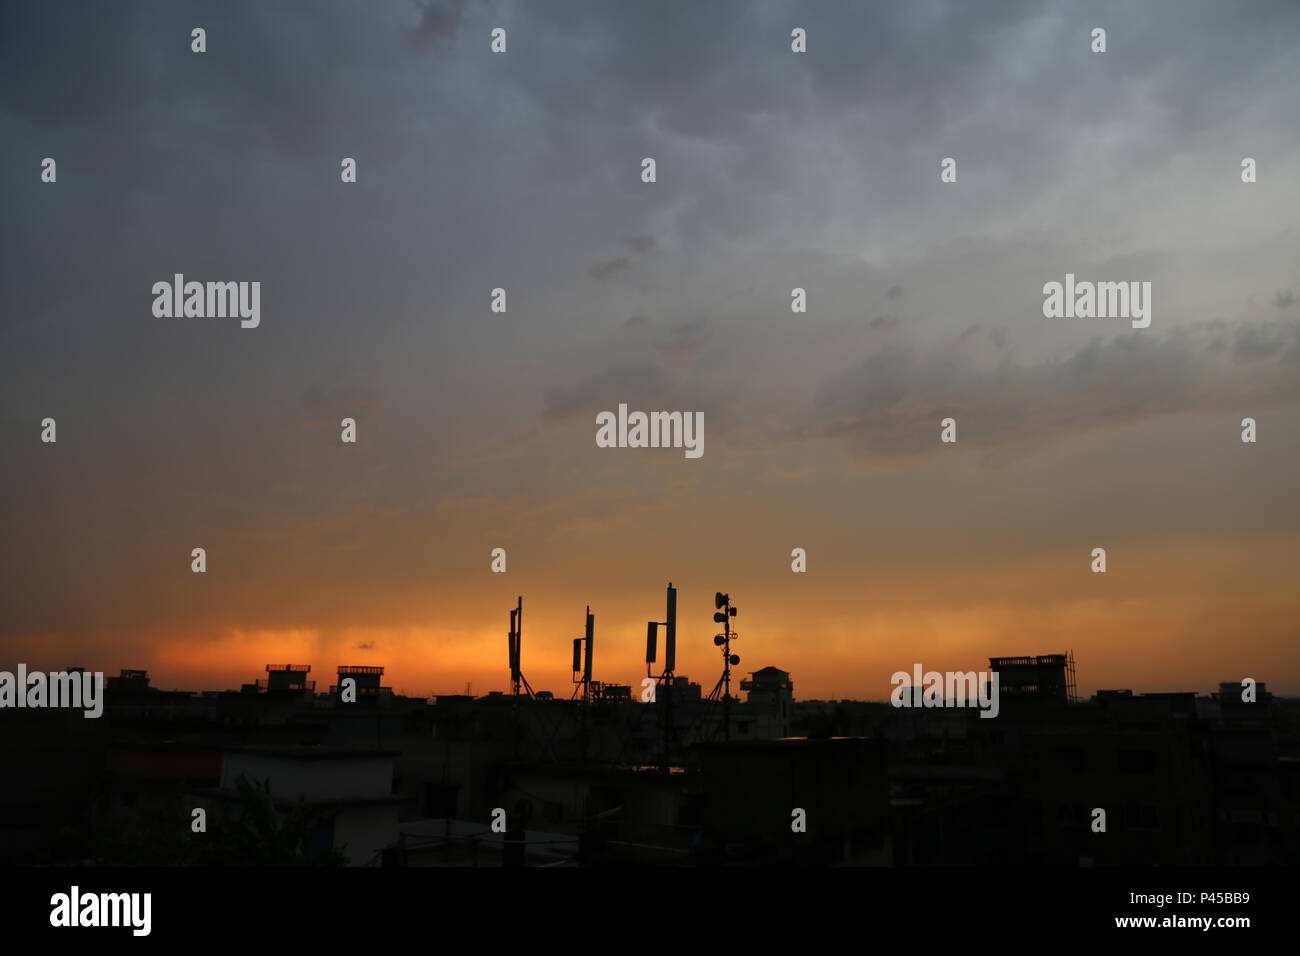 The evening sky of the city of Dhaka - Stock Image